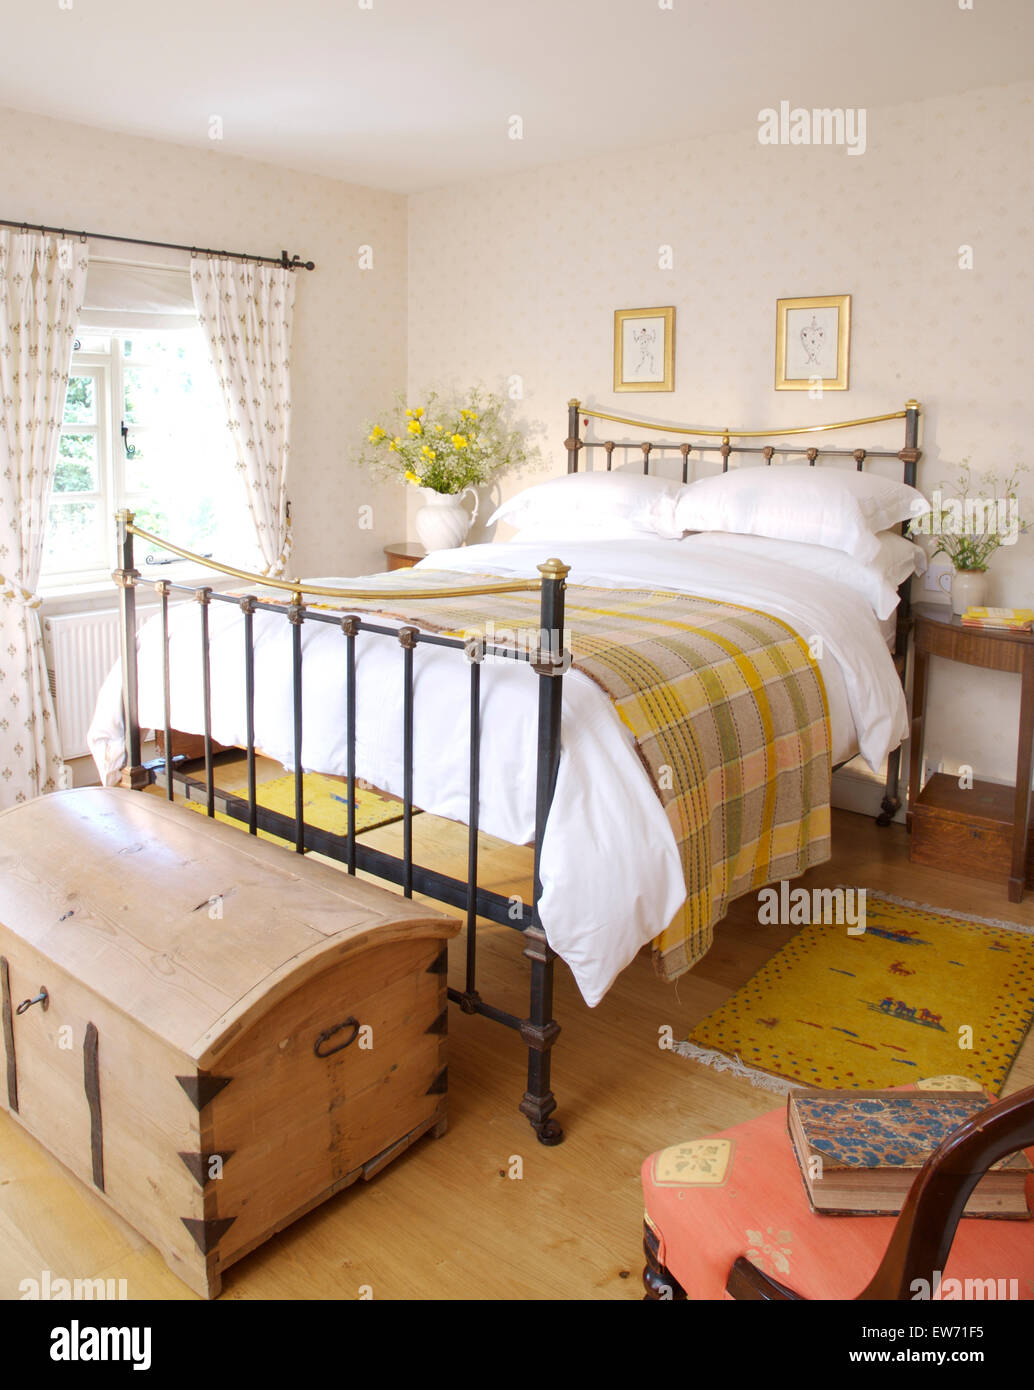 Pine Chest At The Foot Of A Brass Bed With White Bedlinen And A